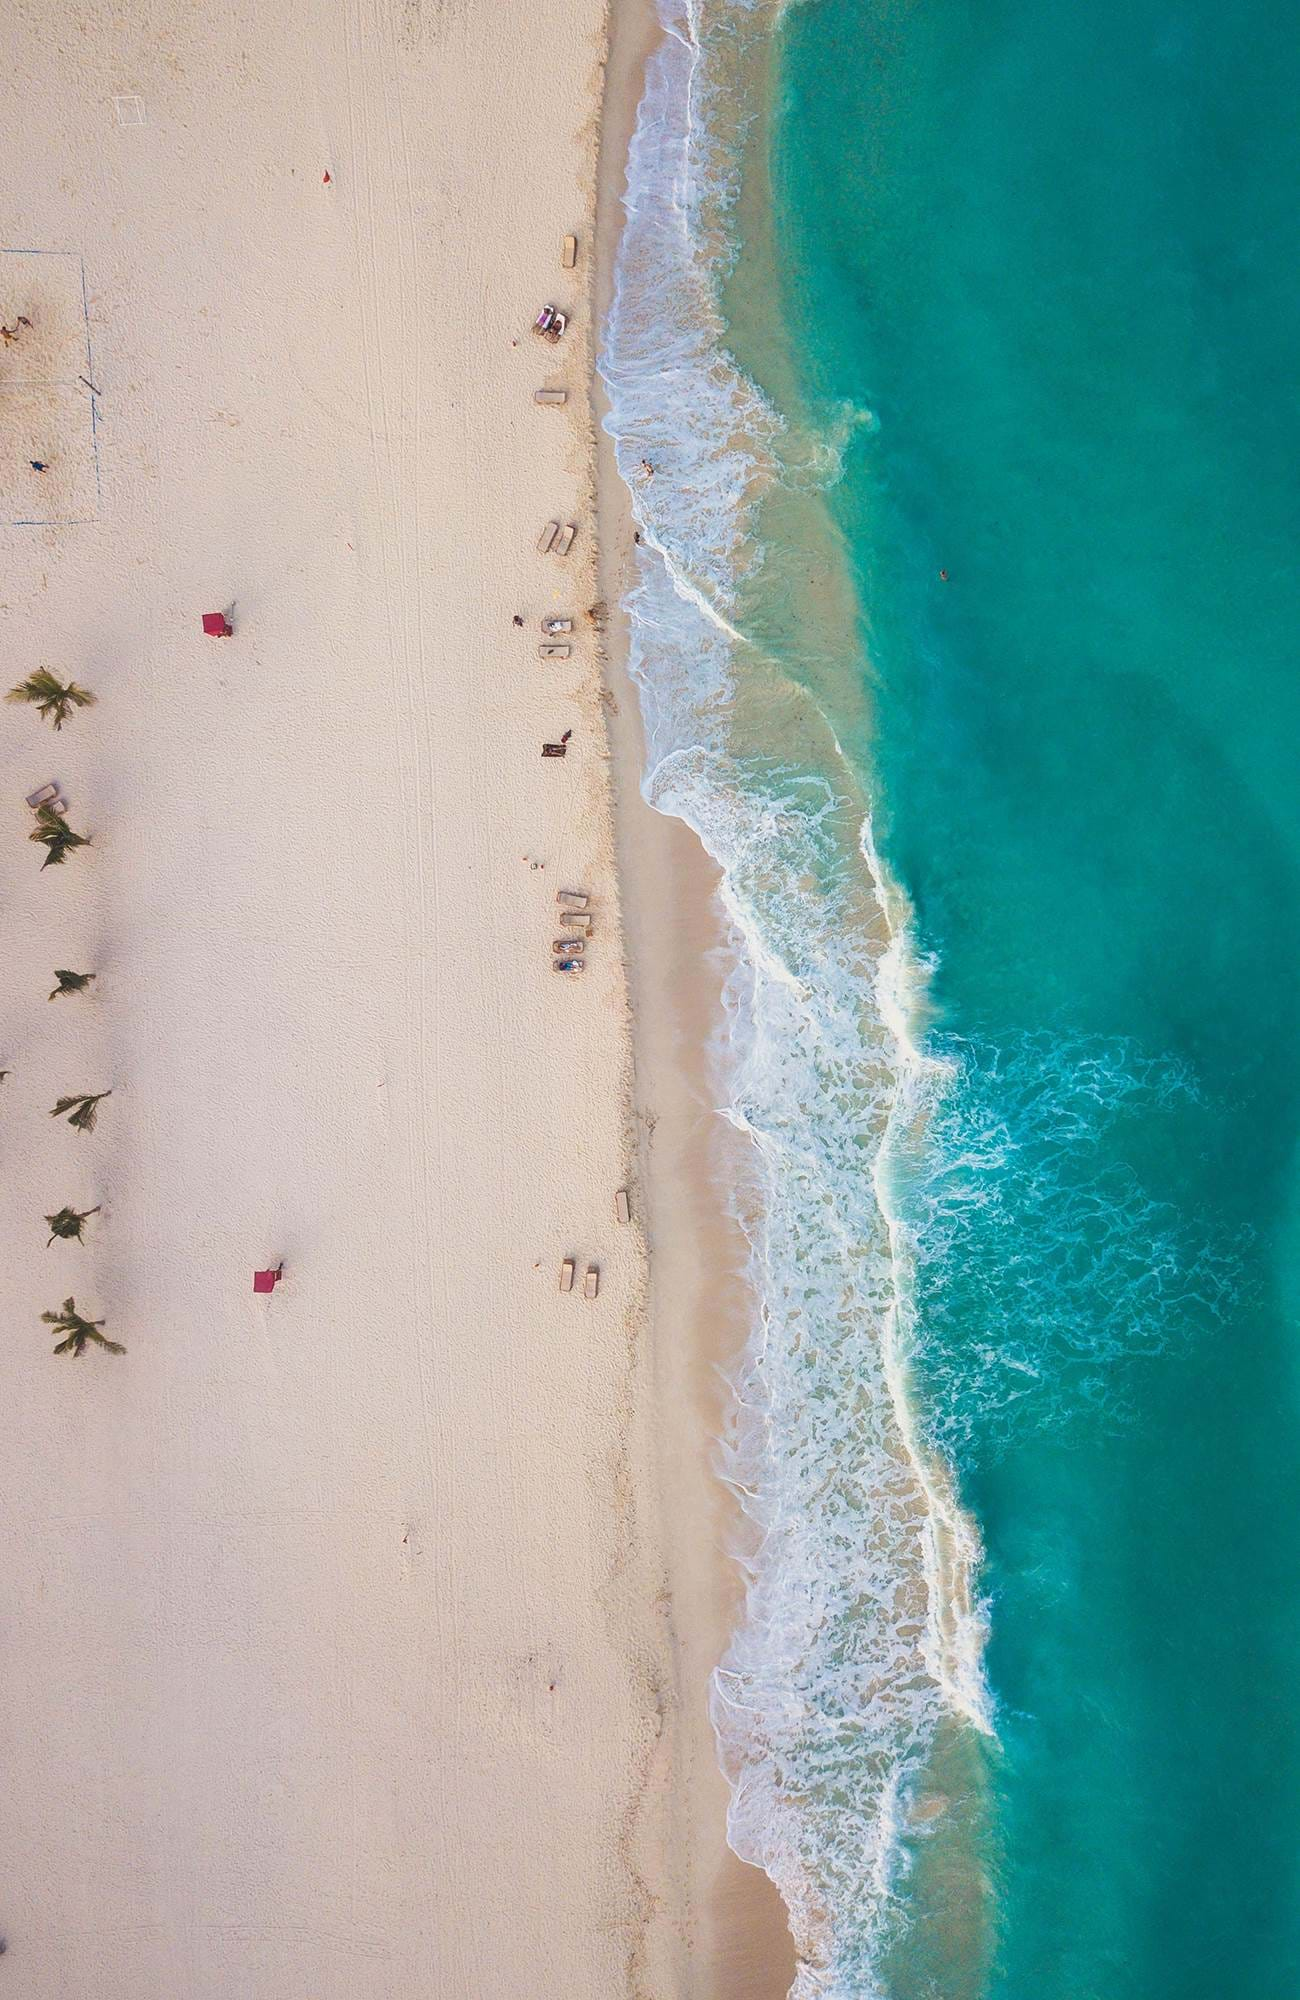 cancun-mexico-sea-view-from-above-sidebar